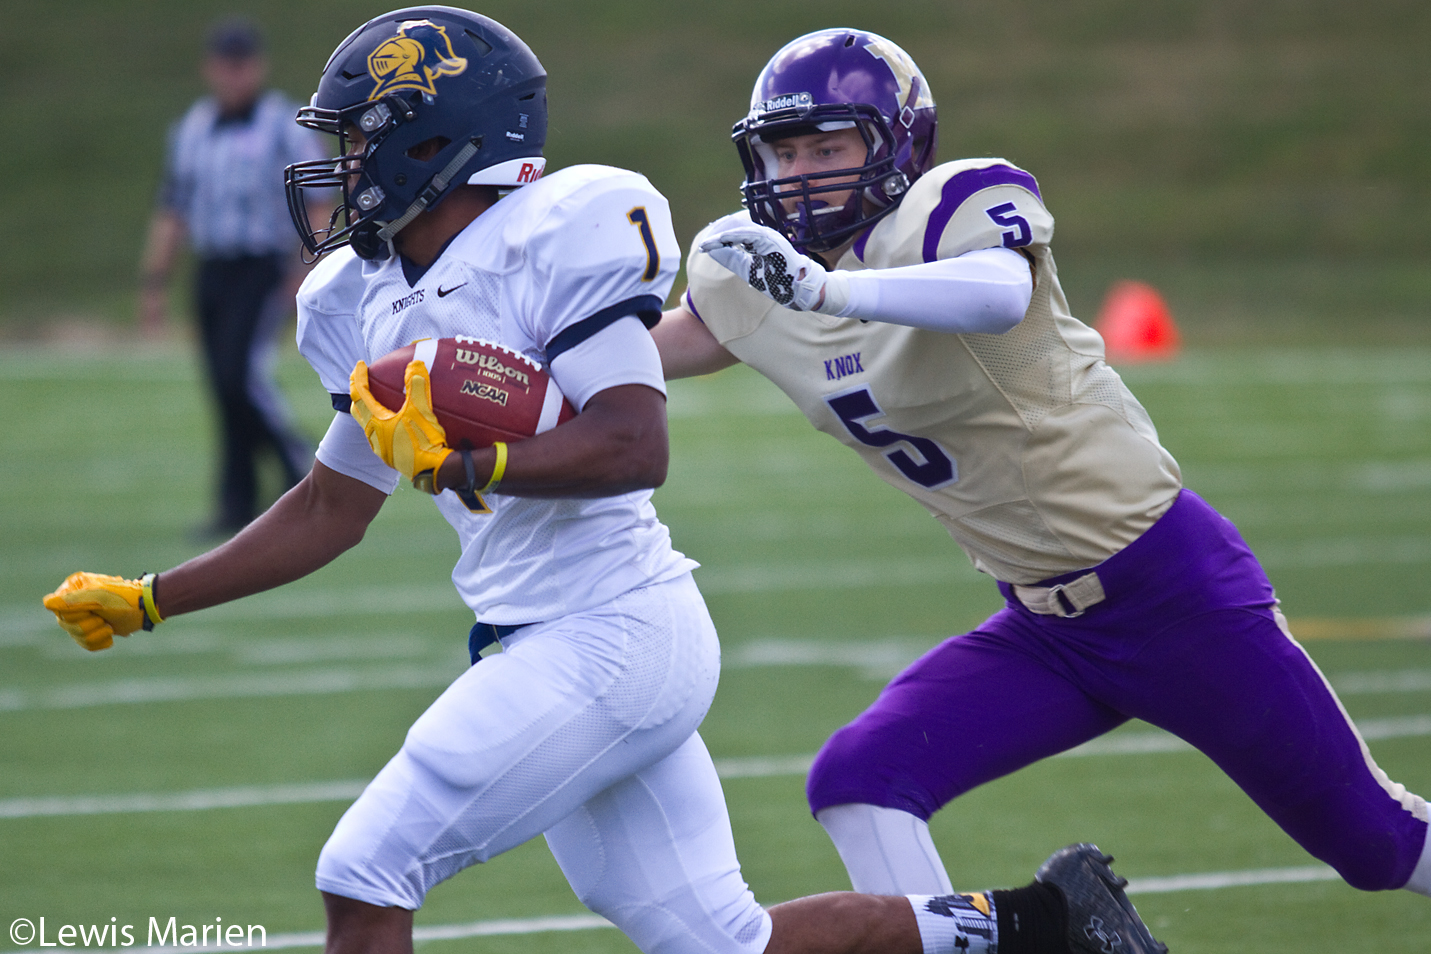 Carleton College's Chris Madden (1) runs with the ball as Knox College's Sam Coffey (5) closes in during the Prairie Fire's home opener against the Knights on Sept. 12 at Knox College's Stisser Field. The Prairie Fire defeated the Knights 23-20.